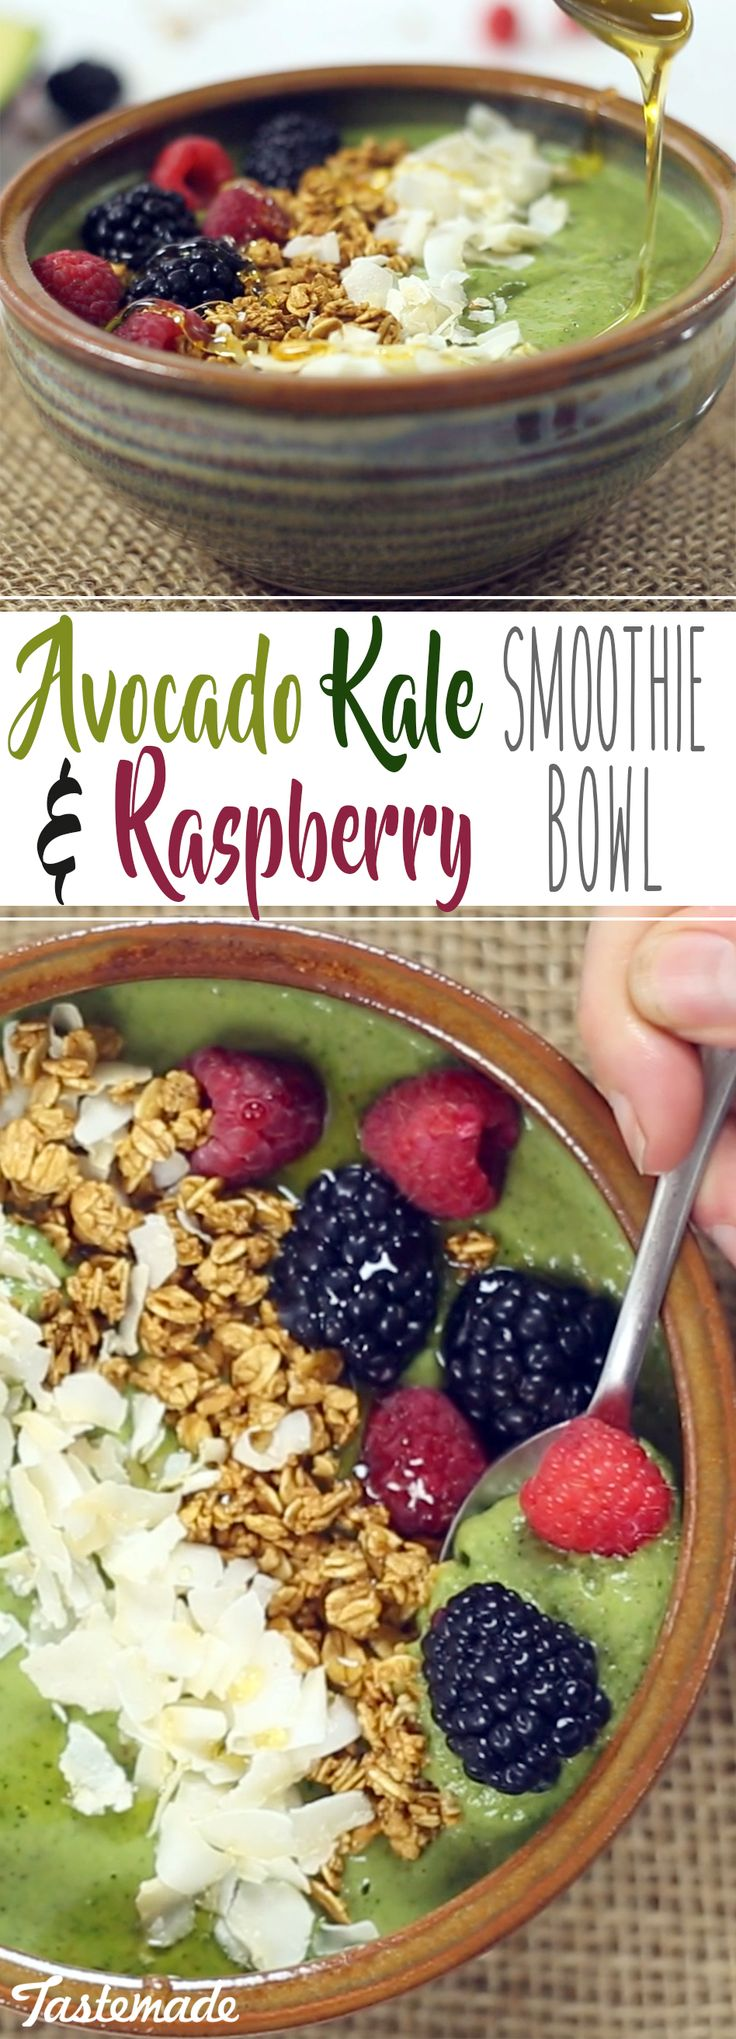 The ultimate kale and avocado smoothie bowl tastes berry delicious!